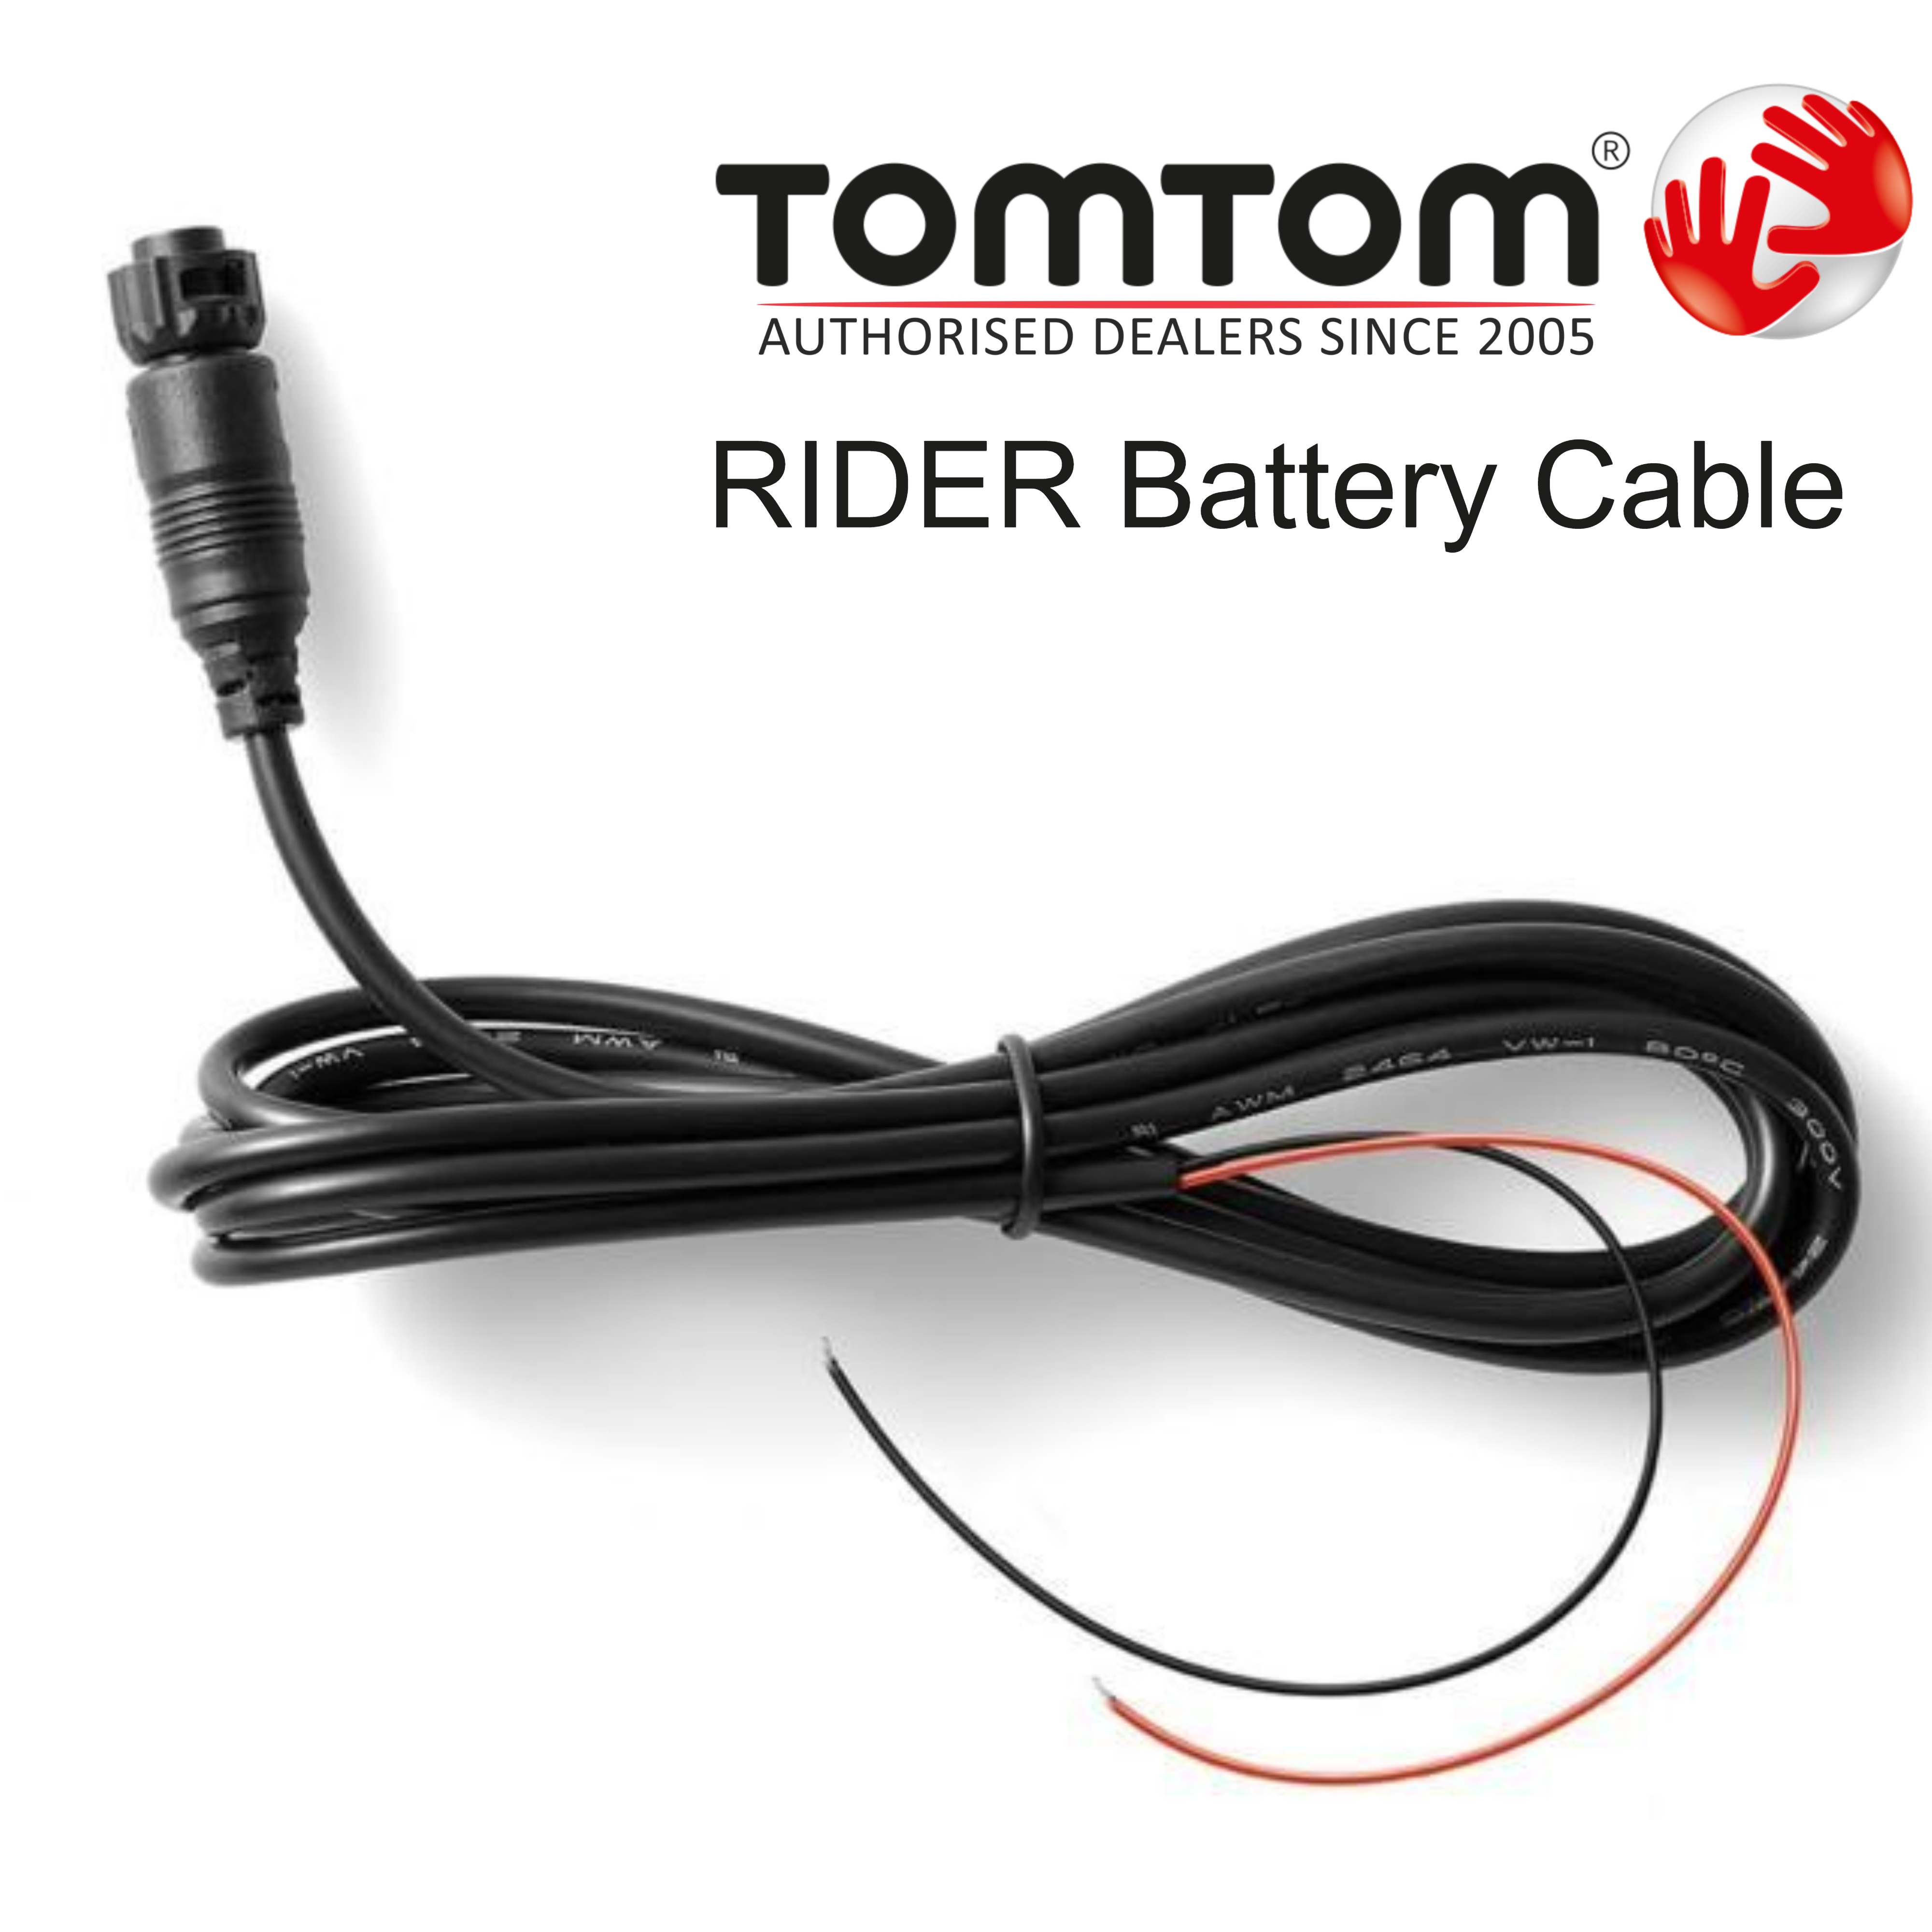 tomtom battery power charging cable for motorcycle satnav. Black Bedroom Furniture Sets. Home Design Ideas